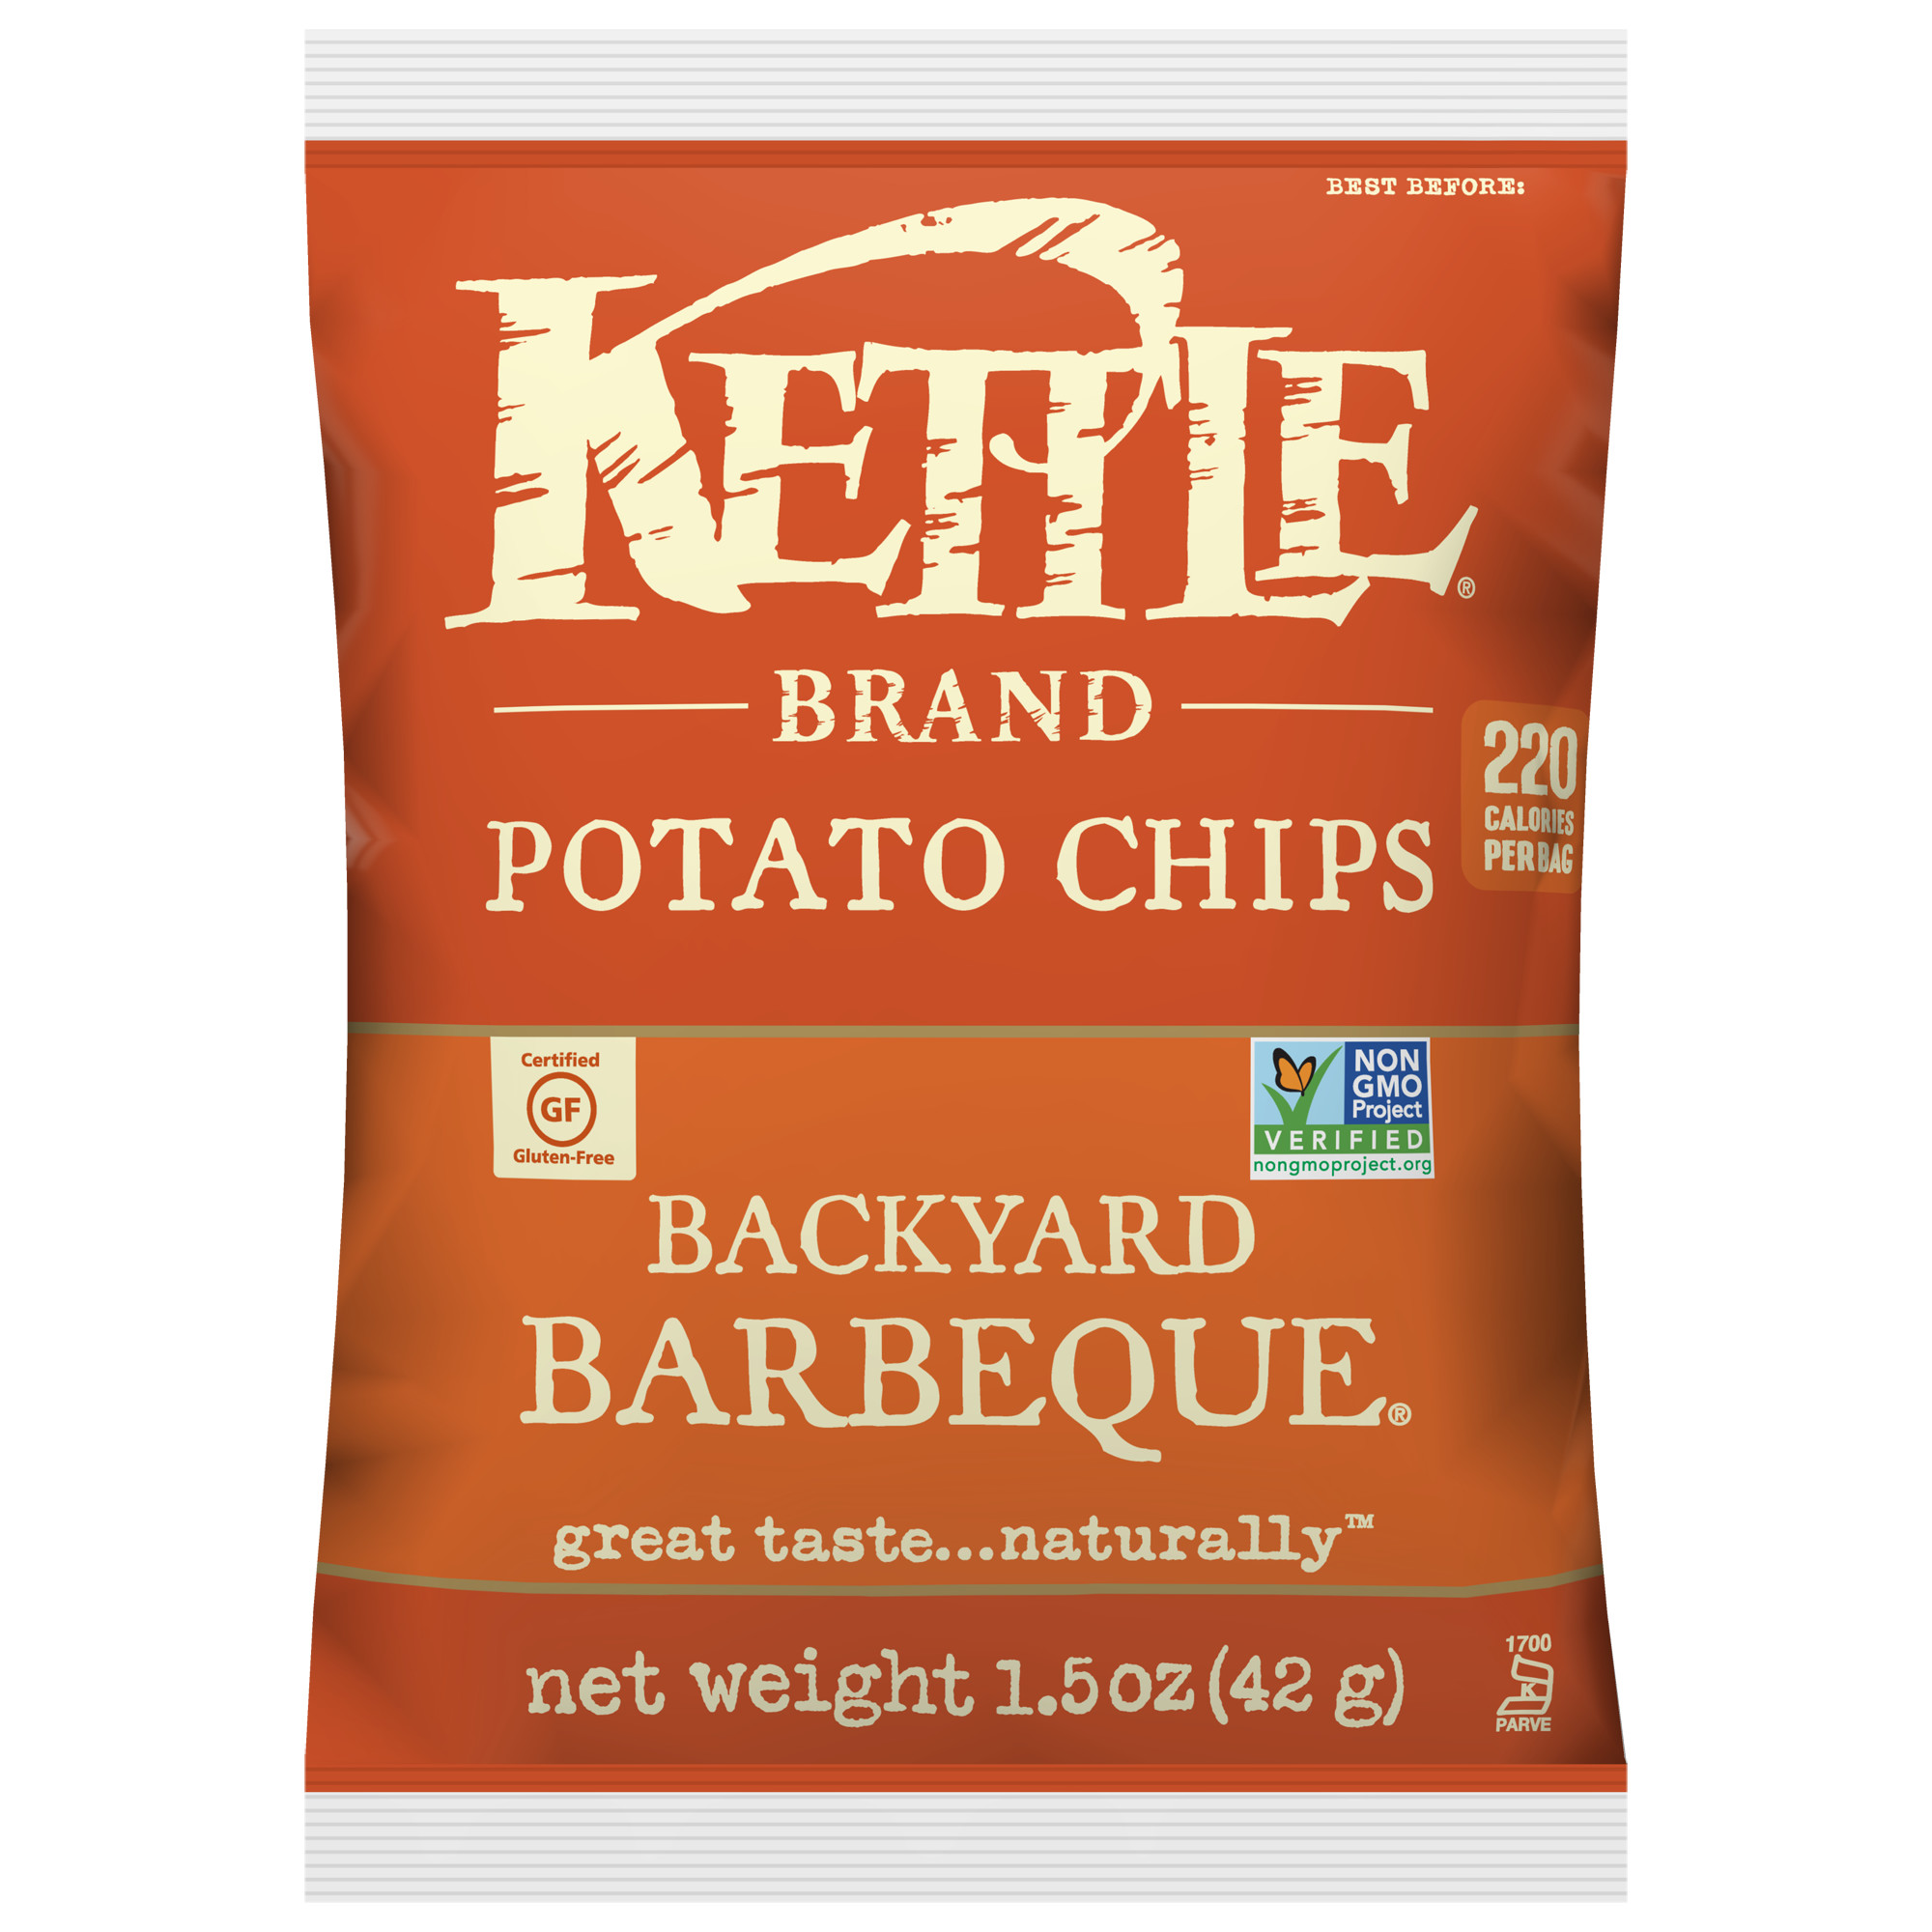 Kettle Brand Backyard Barbeque Multipack of Potato Chips, 1.5 Oz, 24 Ct